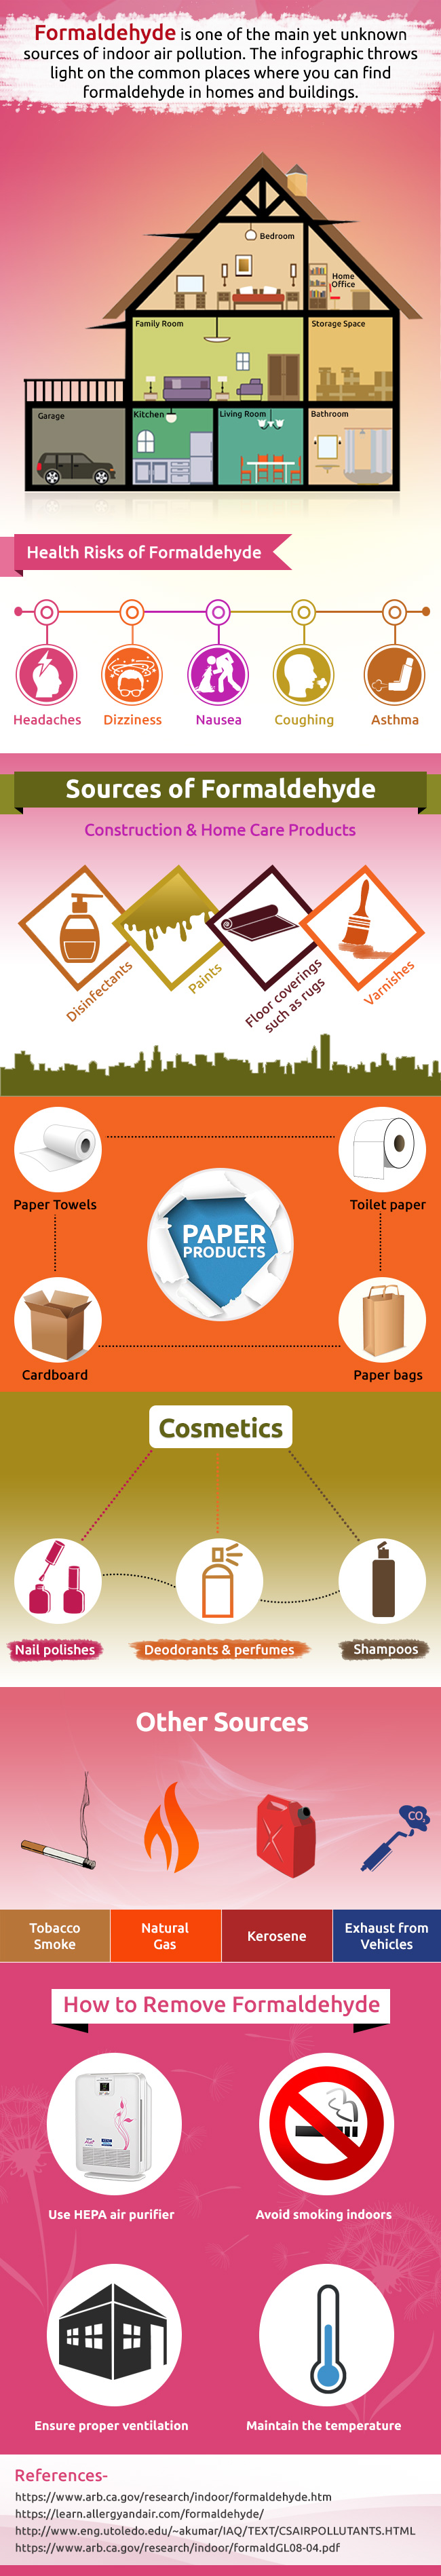 Formaldehyde-a source of Indoor air pollution   Infographic